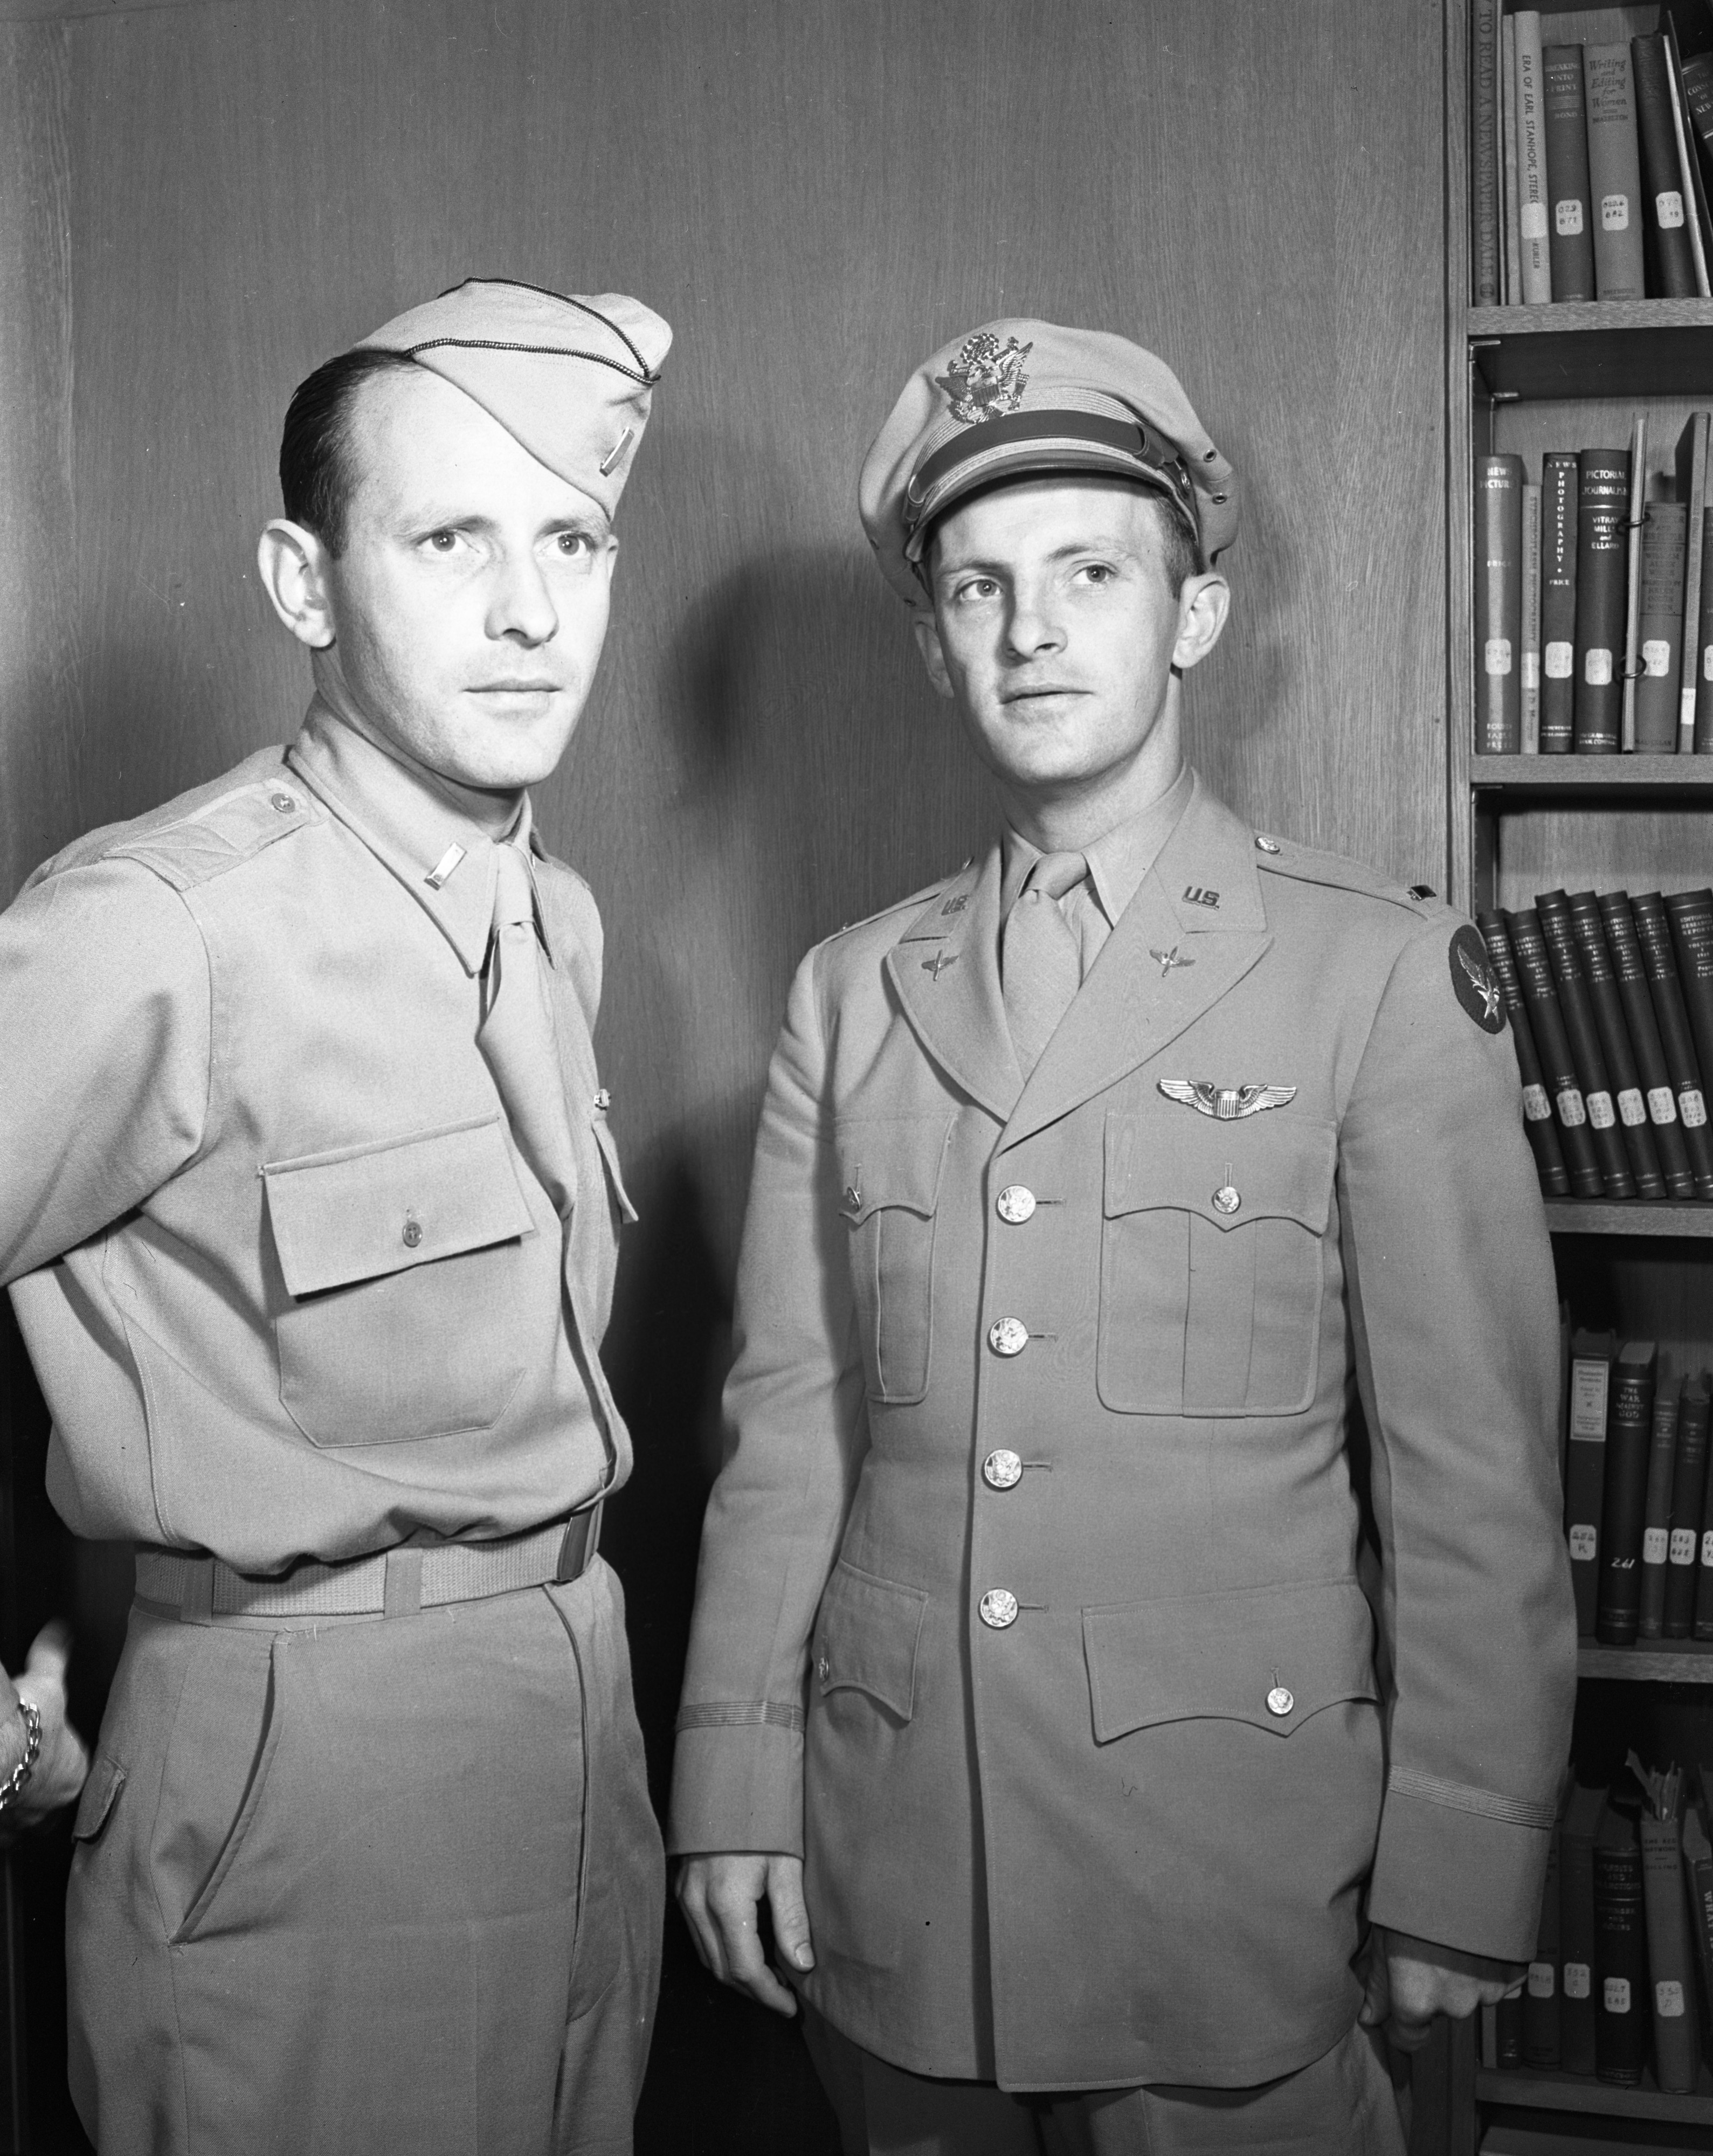 Lts. William A. (left) and Irving T. Conlin (right), June 1944 image